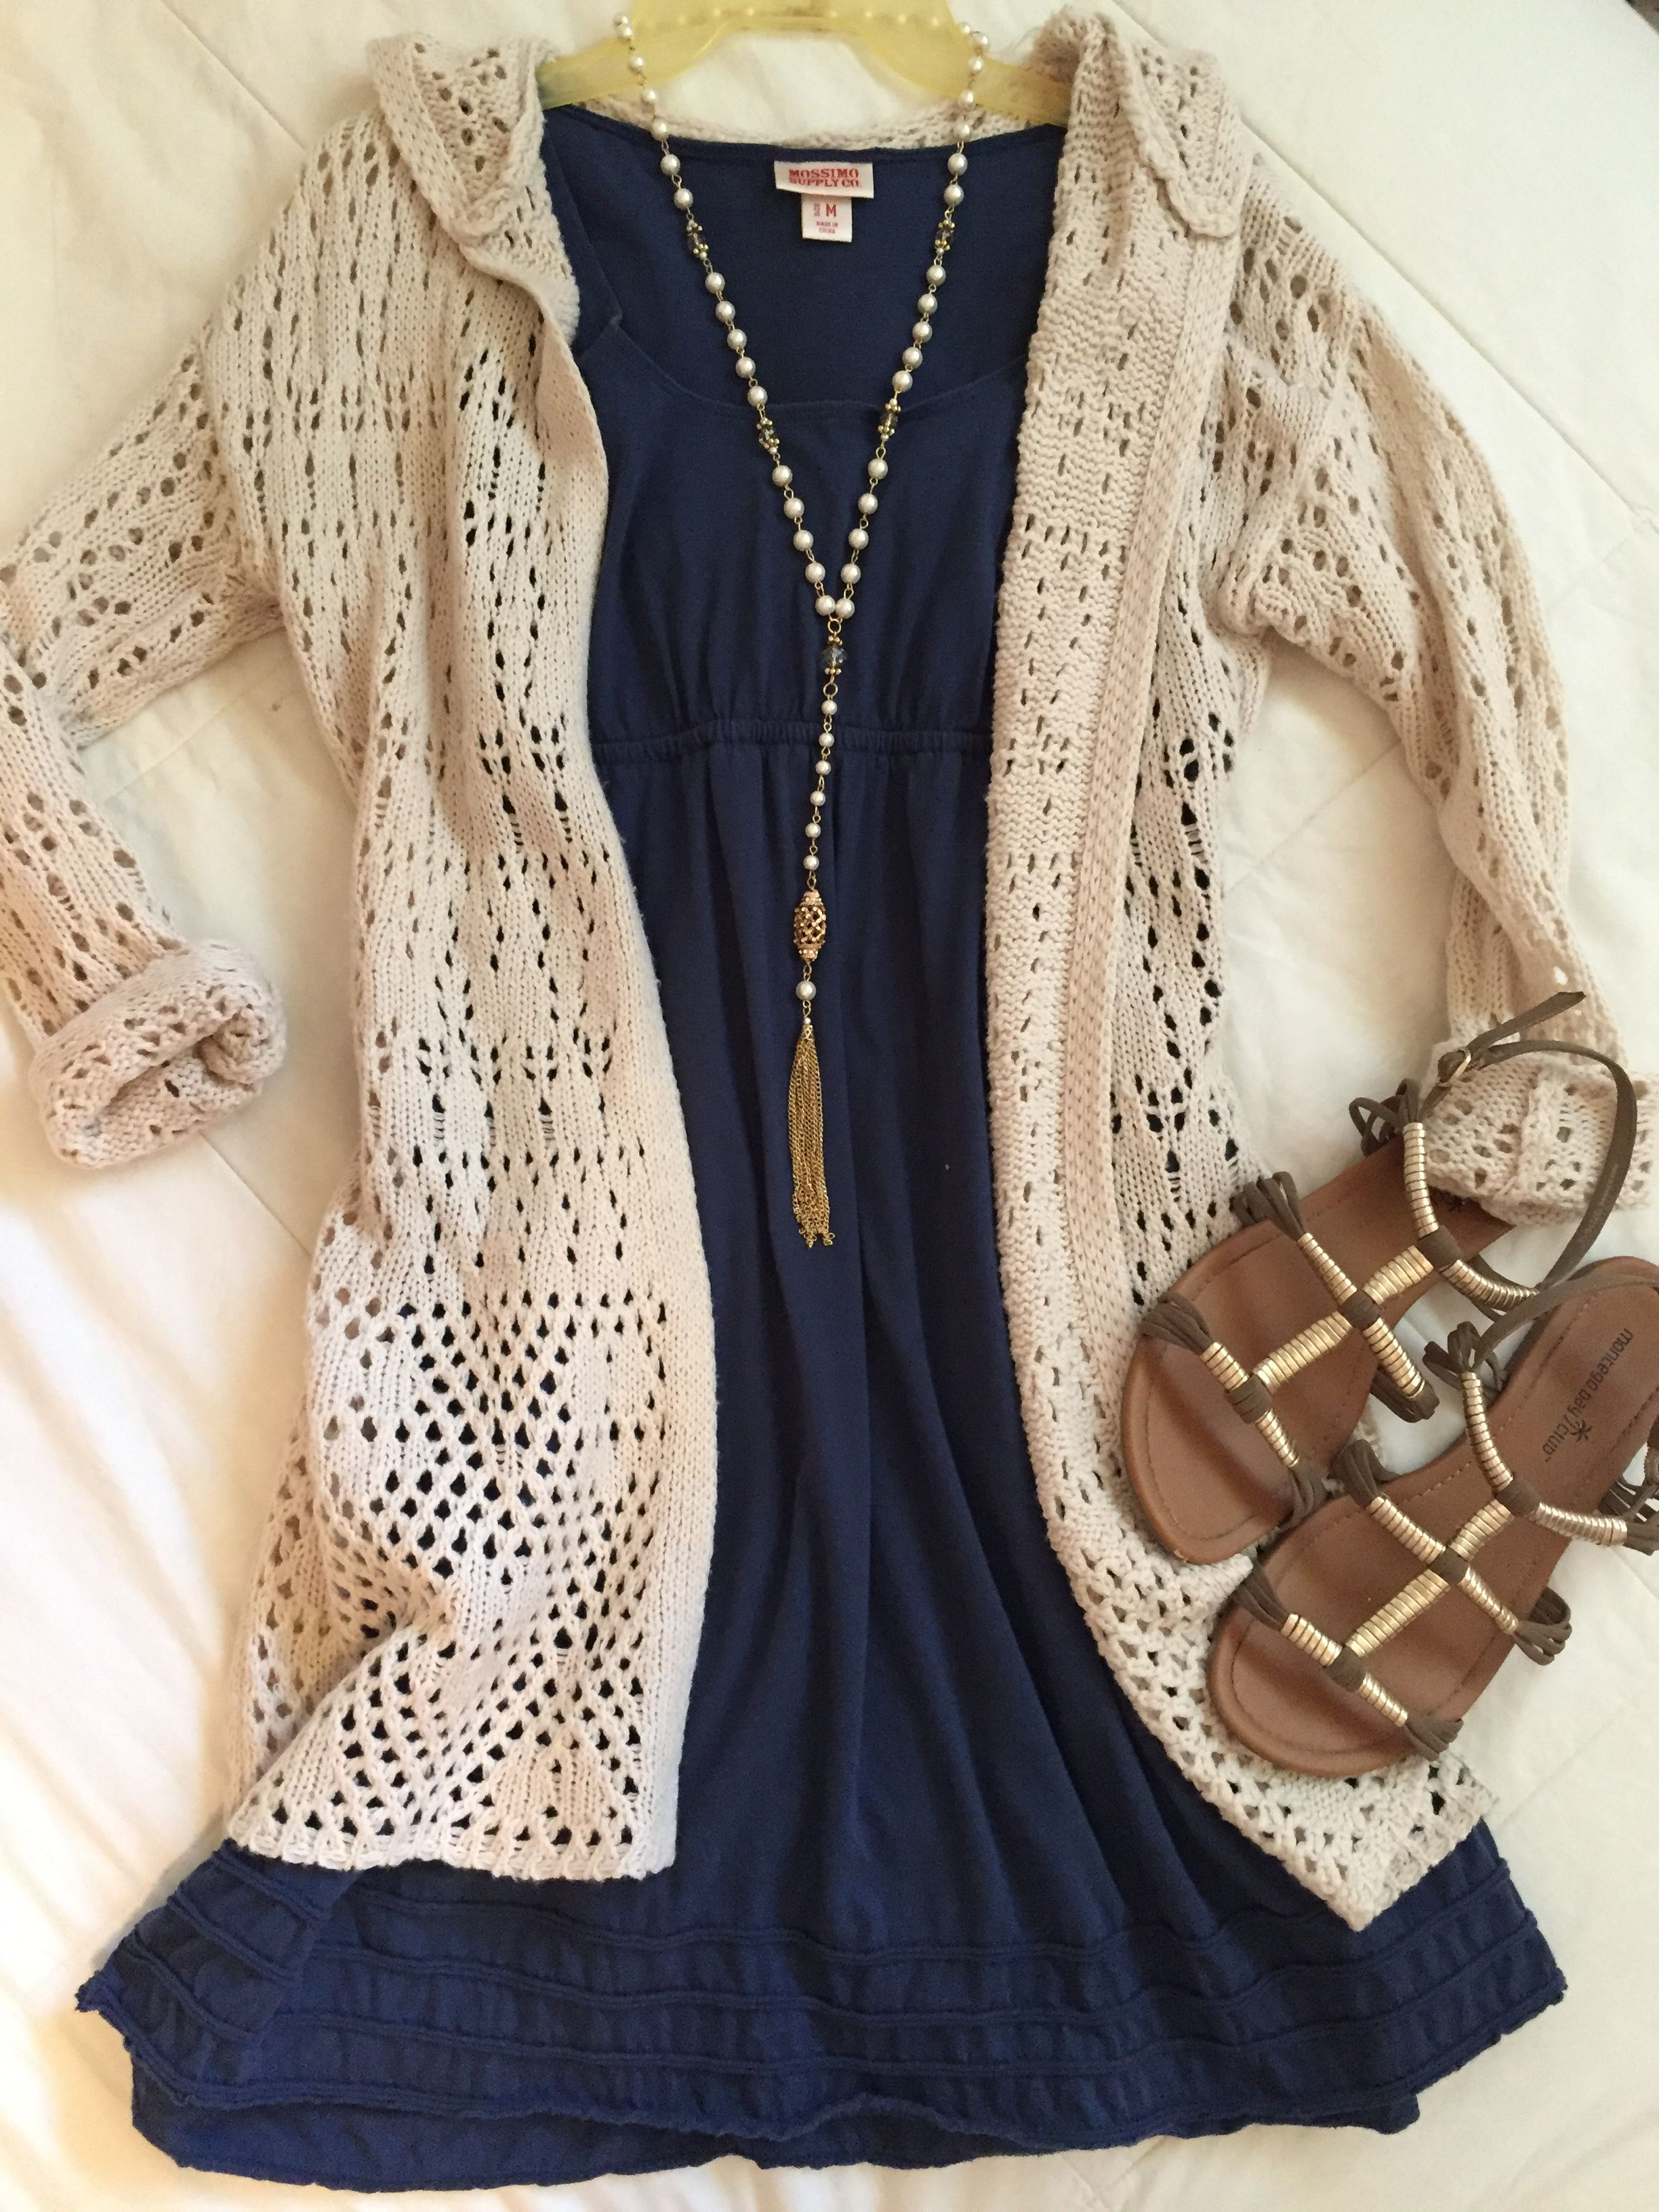 3b78fd20a42e Church or teacher outfit | Cardigan: JCPenney Dress: Target Necklace: Kohls  Shoes: Payless